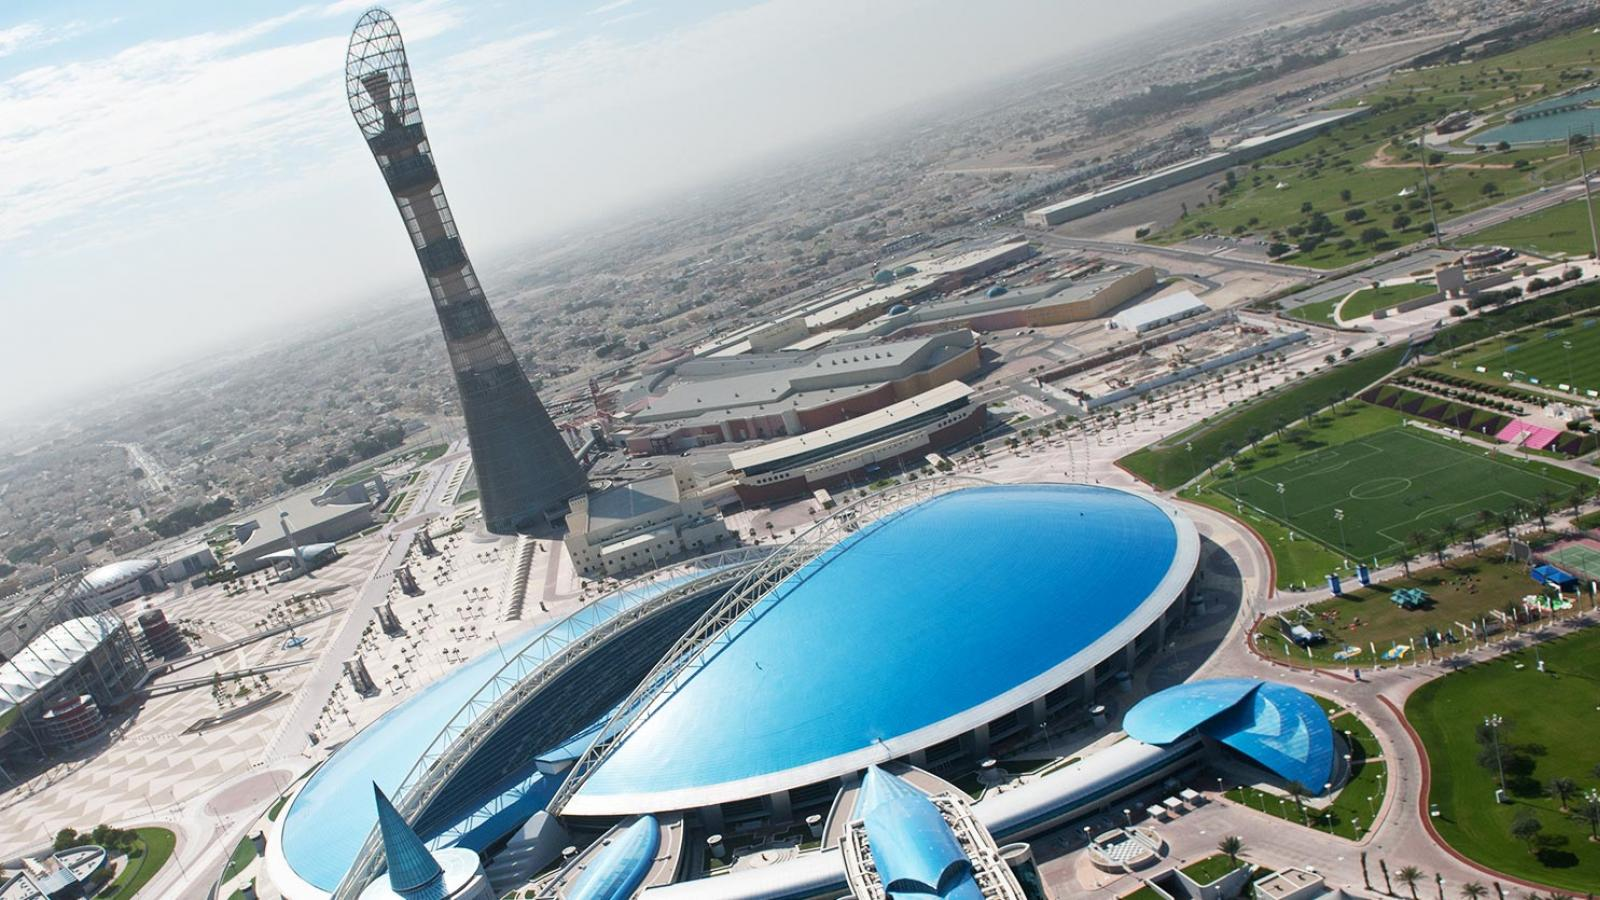 Aspire Zone Foundation to host speaker series on sport and mental health